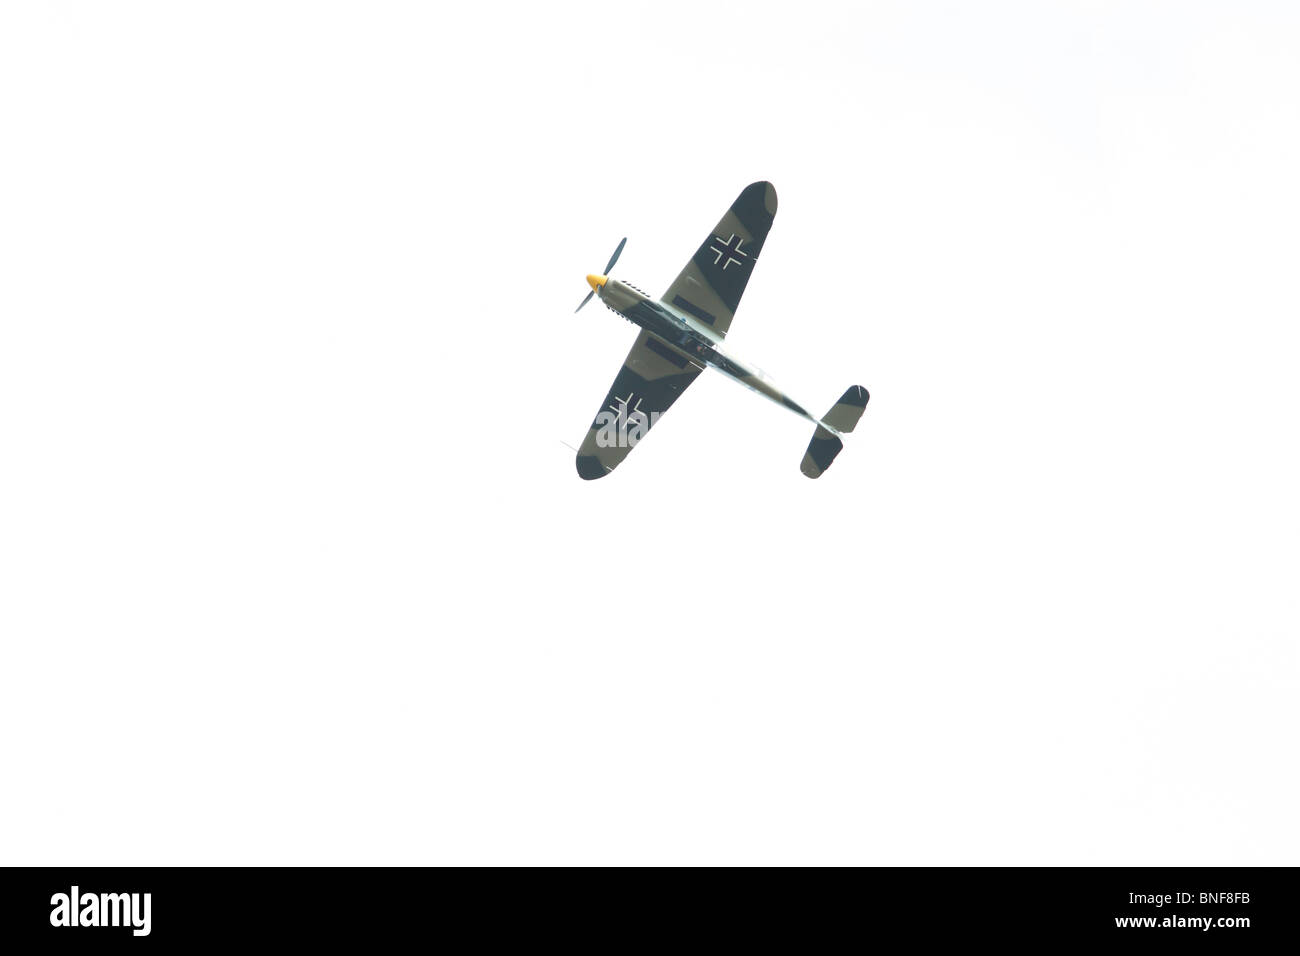 Messerschmidt Me109, Lincoln, International Airshow. This is actually a Hispano Aviacion HA-1112 Buchon which is - Stock Image